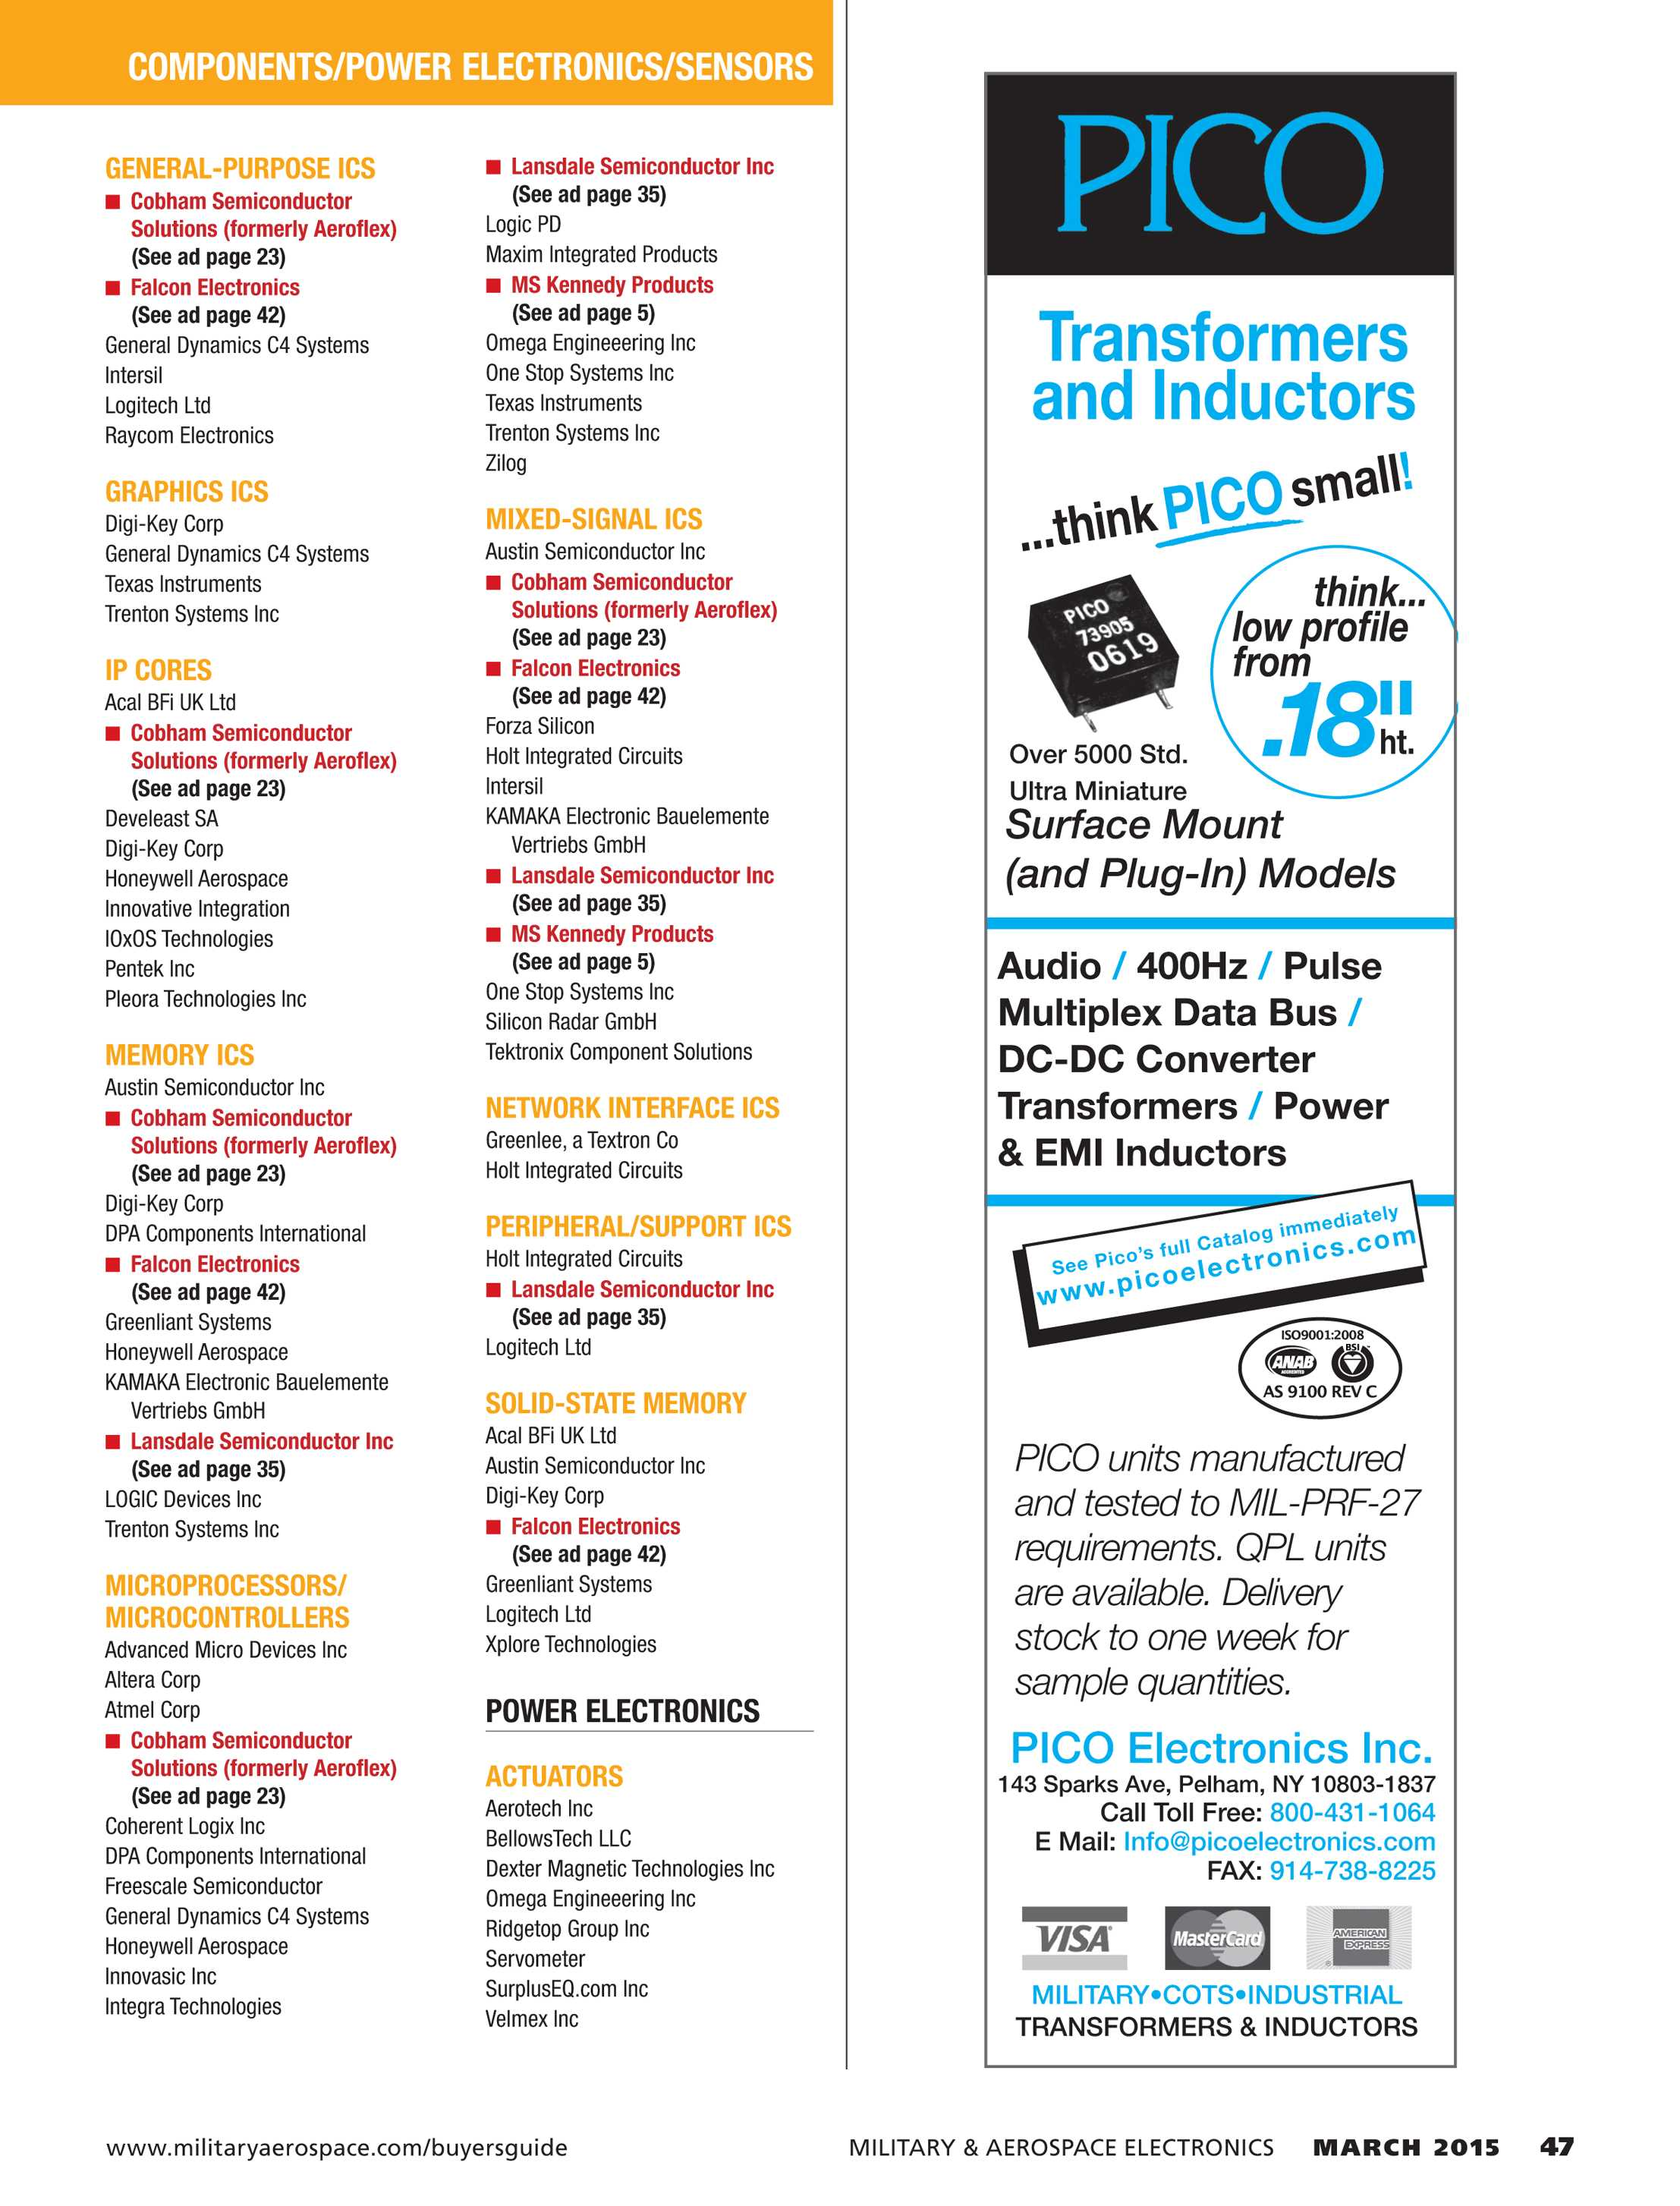 Military & Aerospace Electronics - March 2015 - page 47